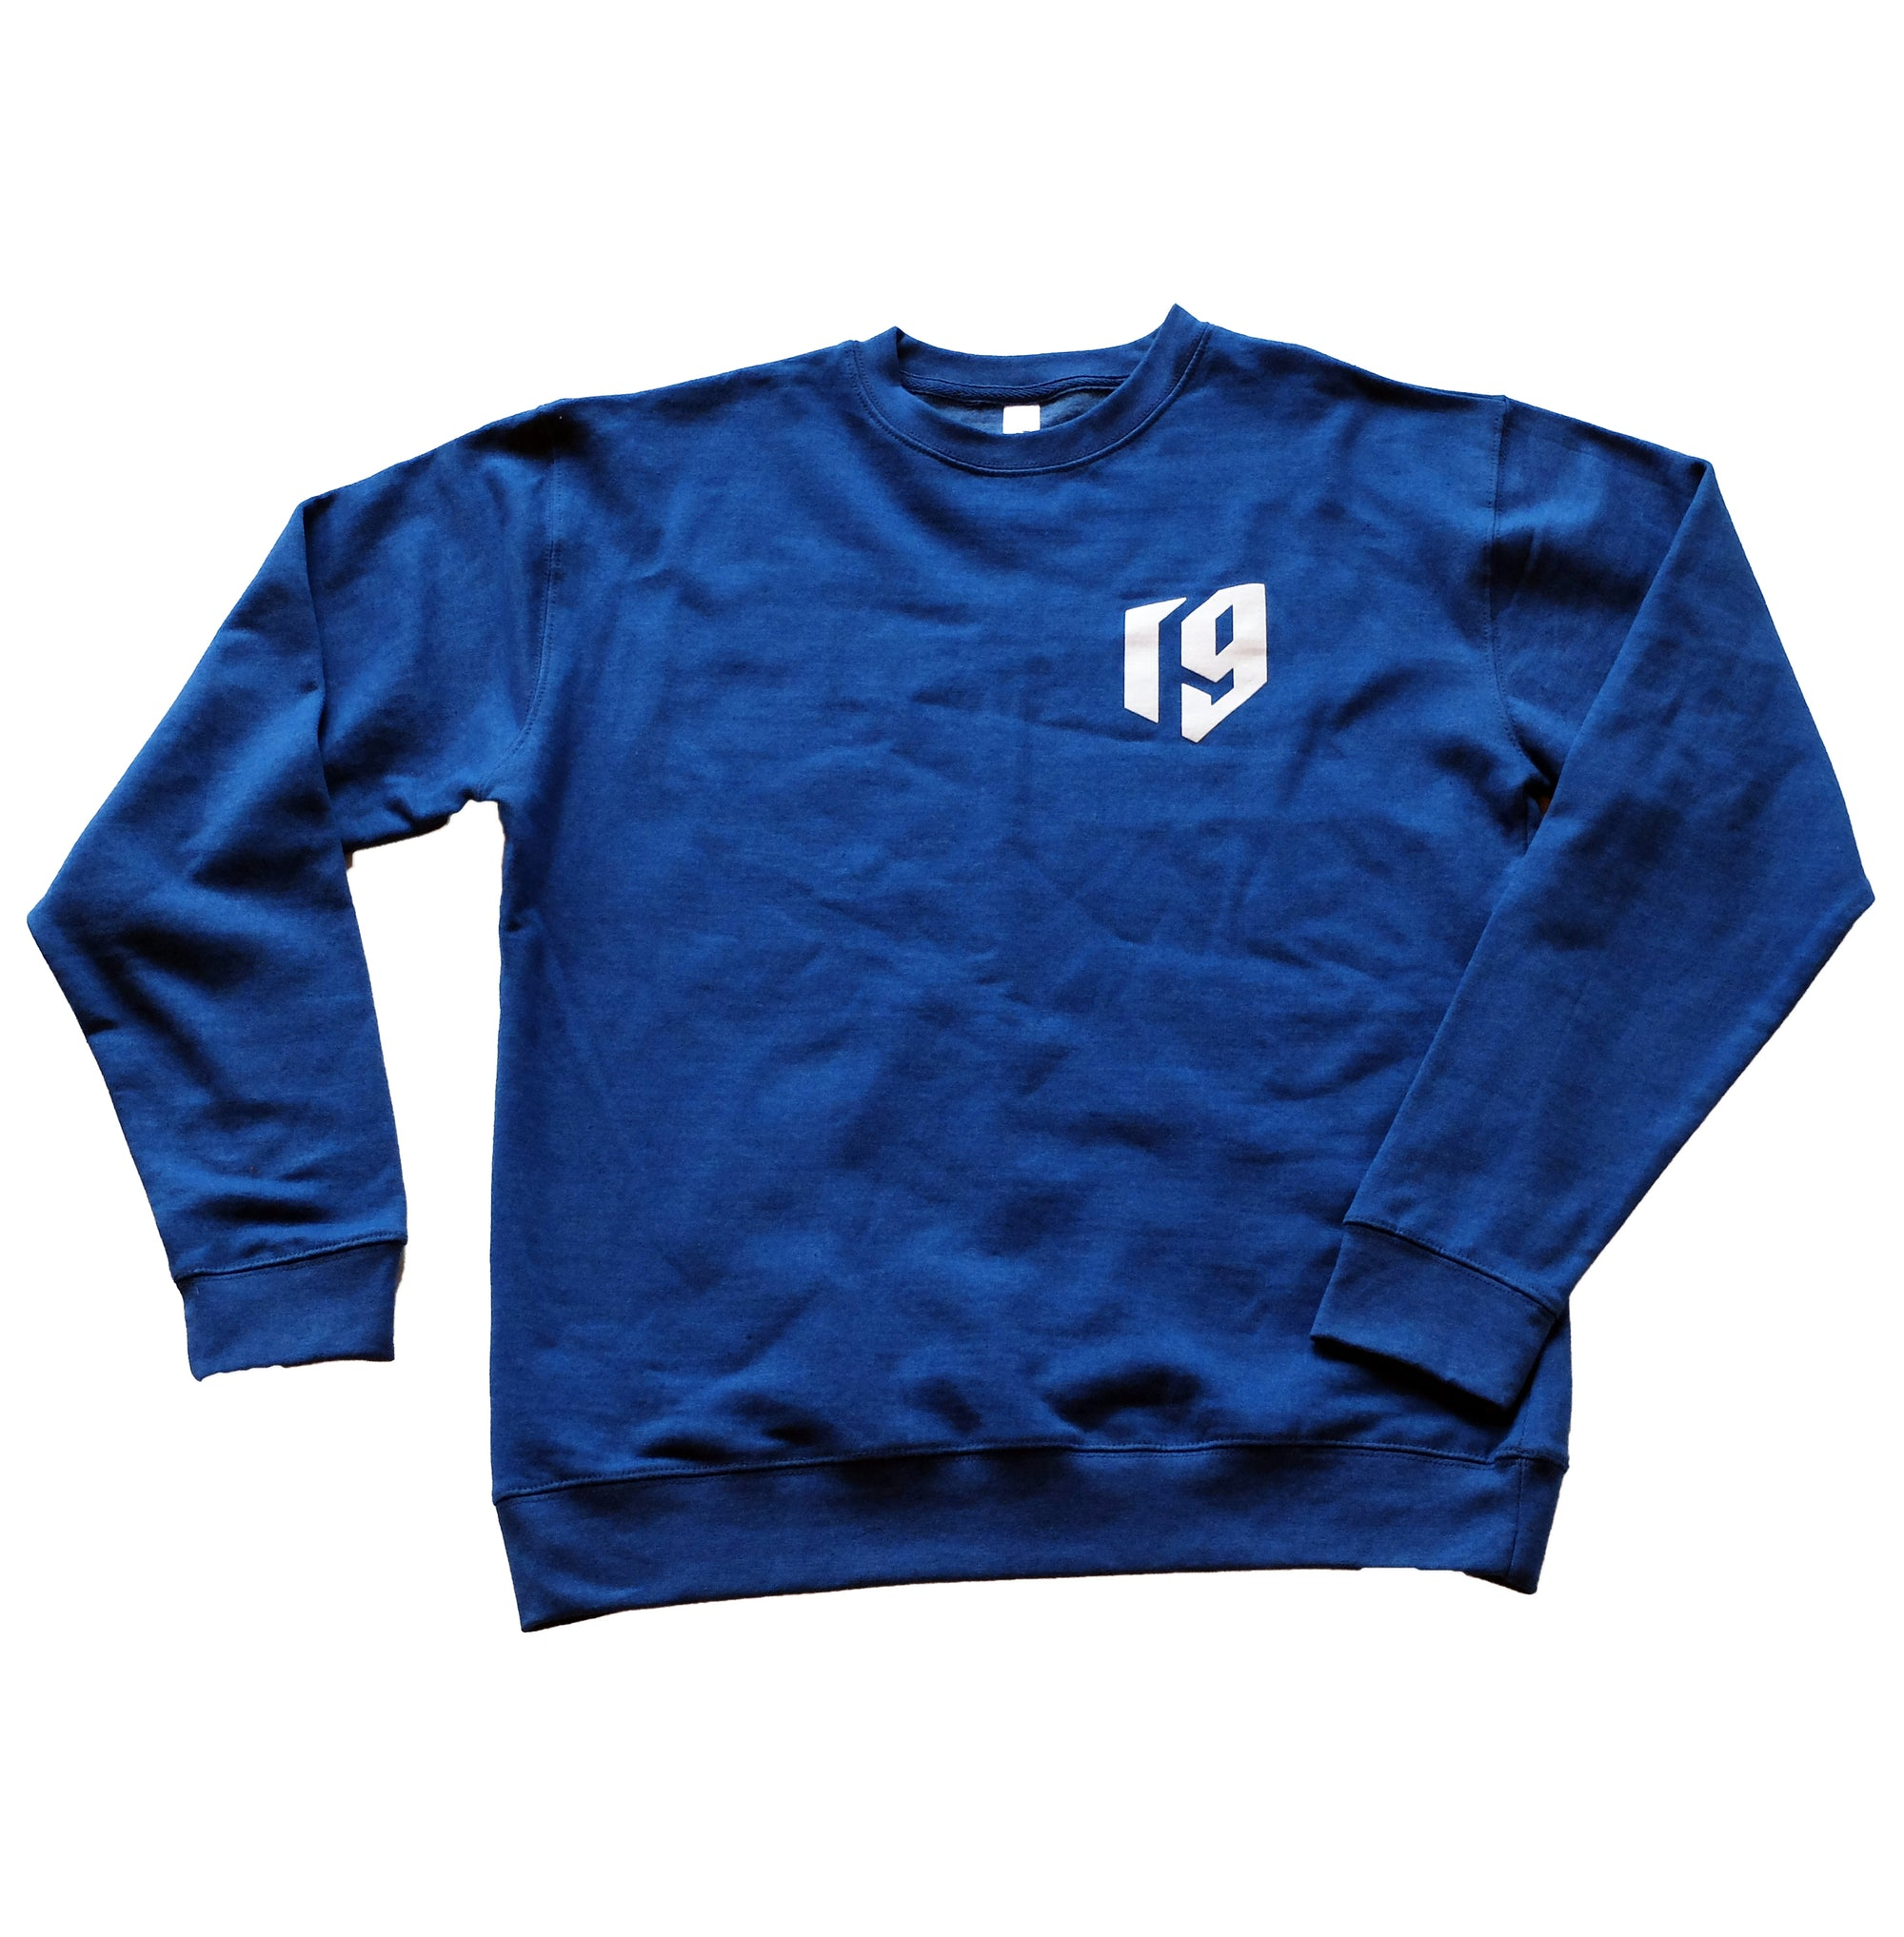 Classic Crew Neck - Unisex 'Route 19 Brewing'